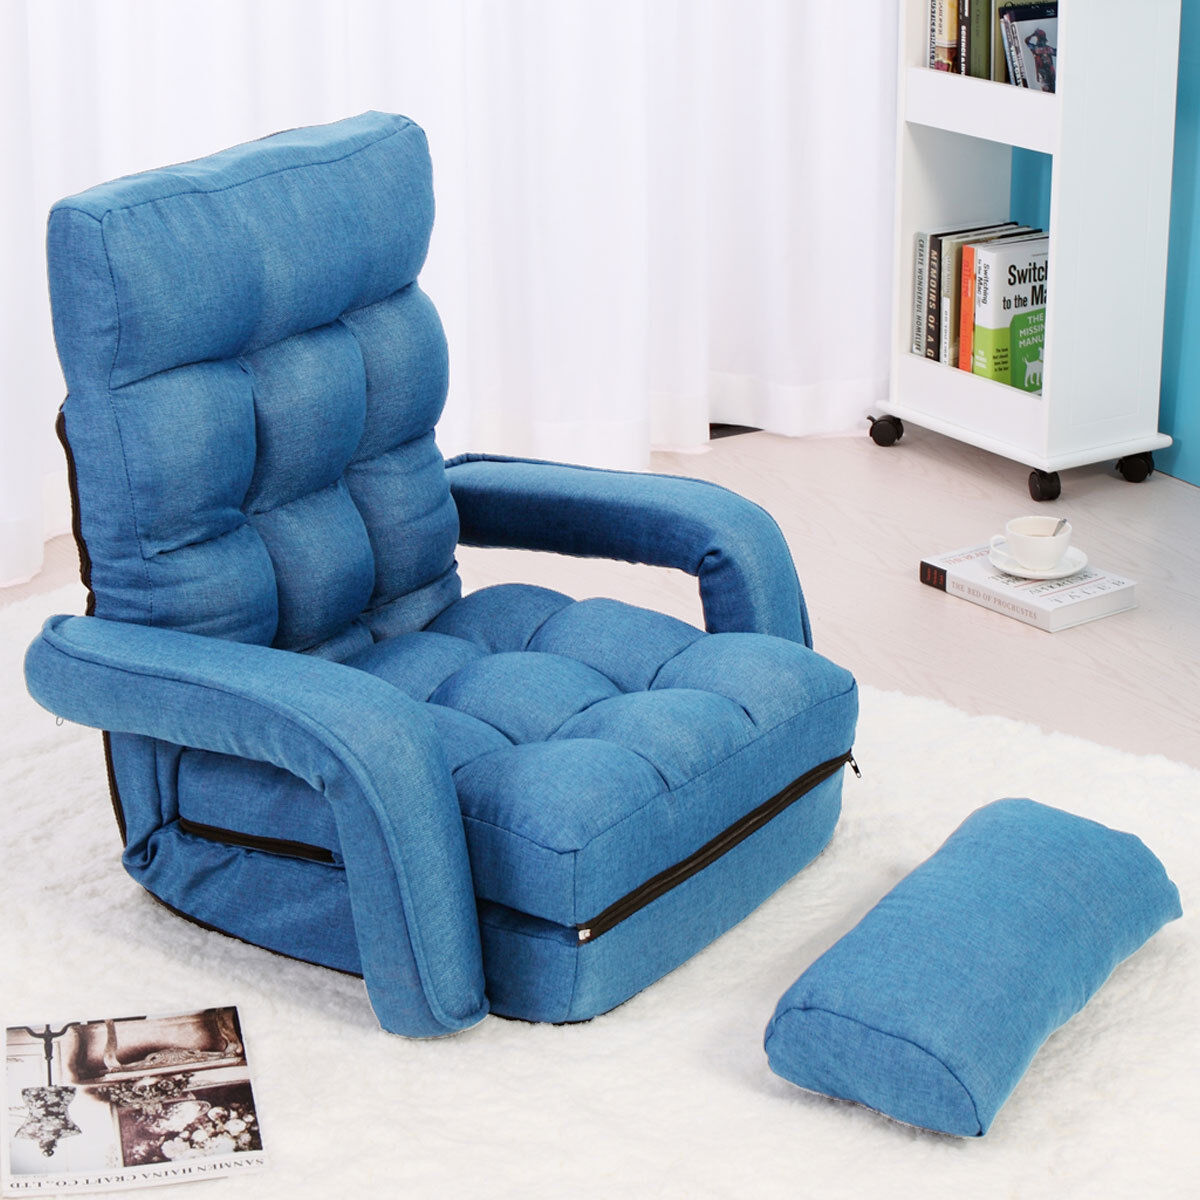 Adjustable Folding Lazy Sofa Floor Chair Sofa Lounger Bed w/